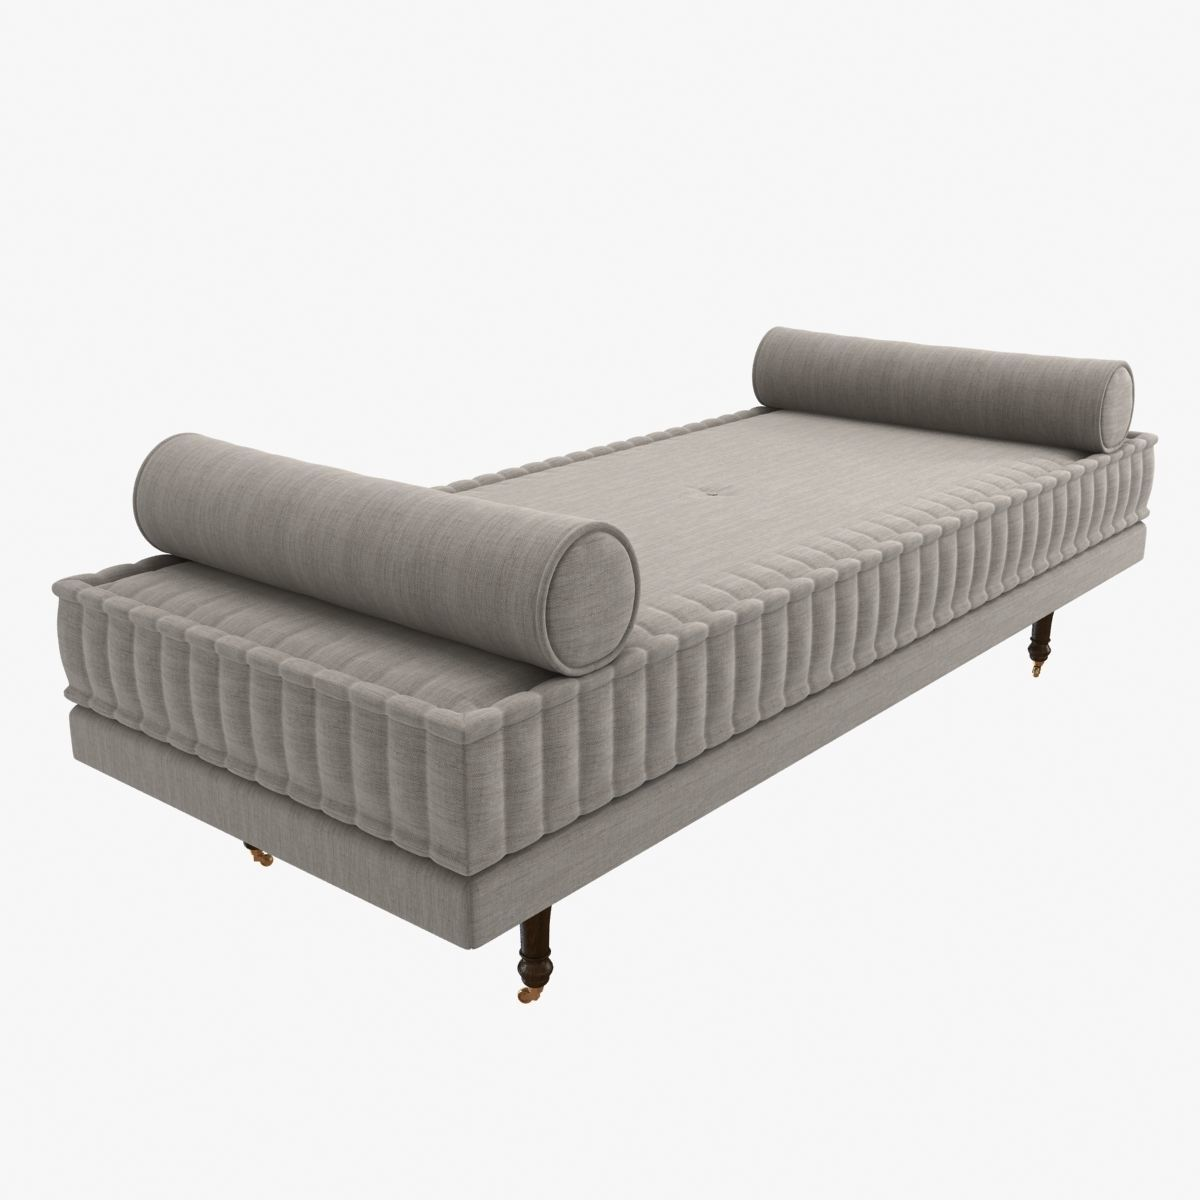 Daybed Twin Mattress | Bed Roll Urban Outfitters | Daybed Cushions